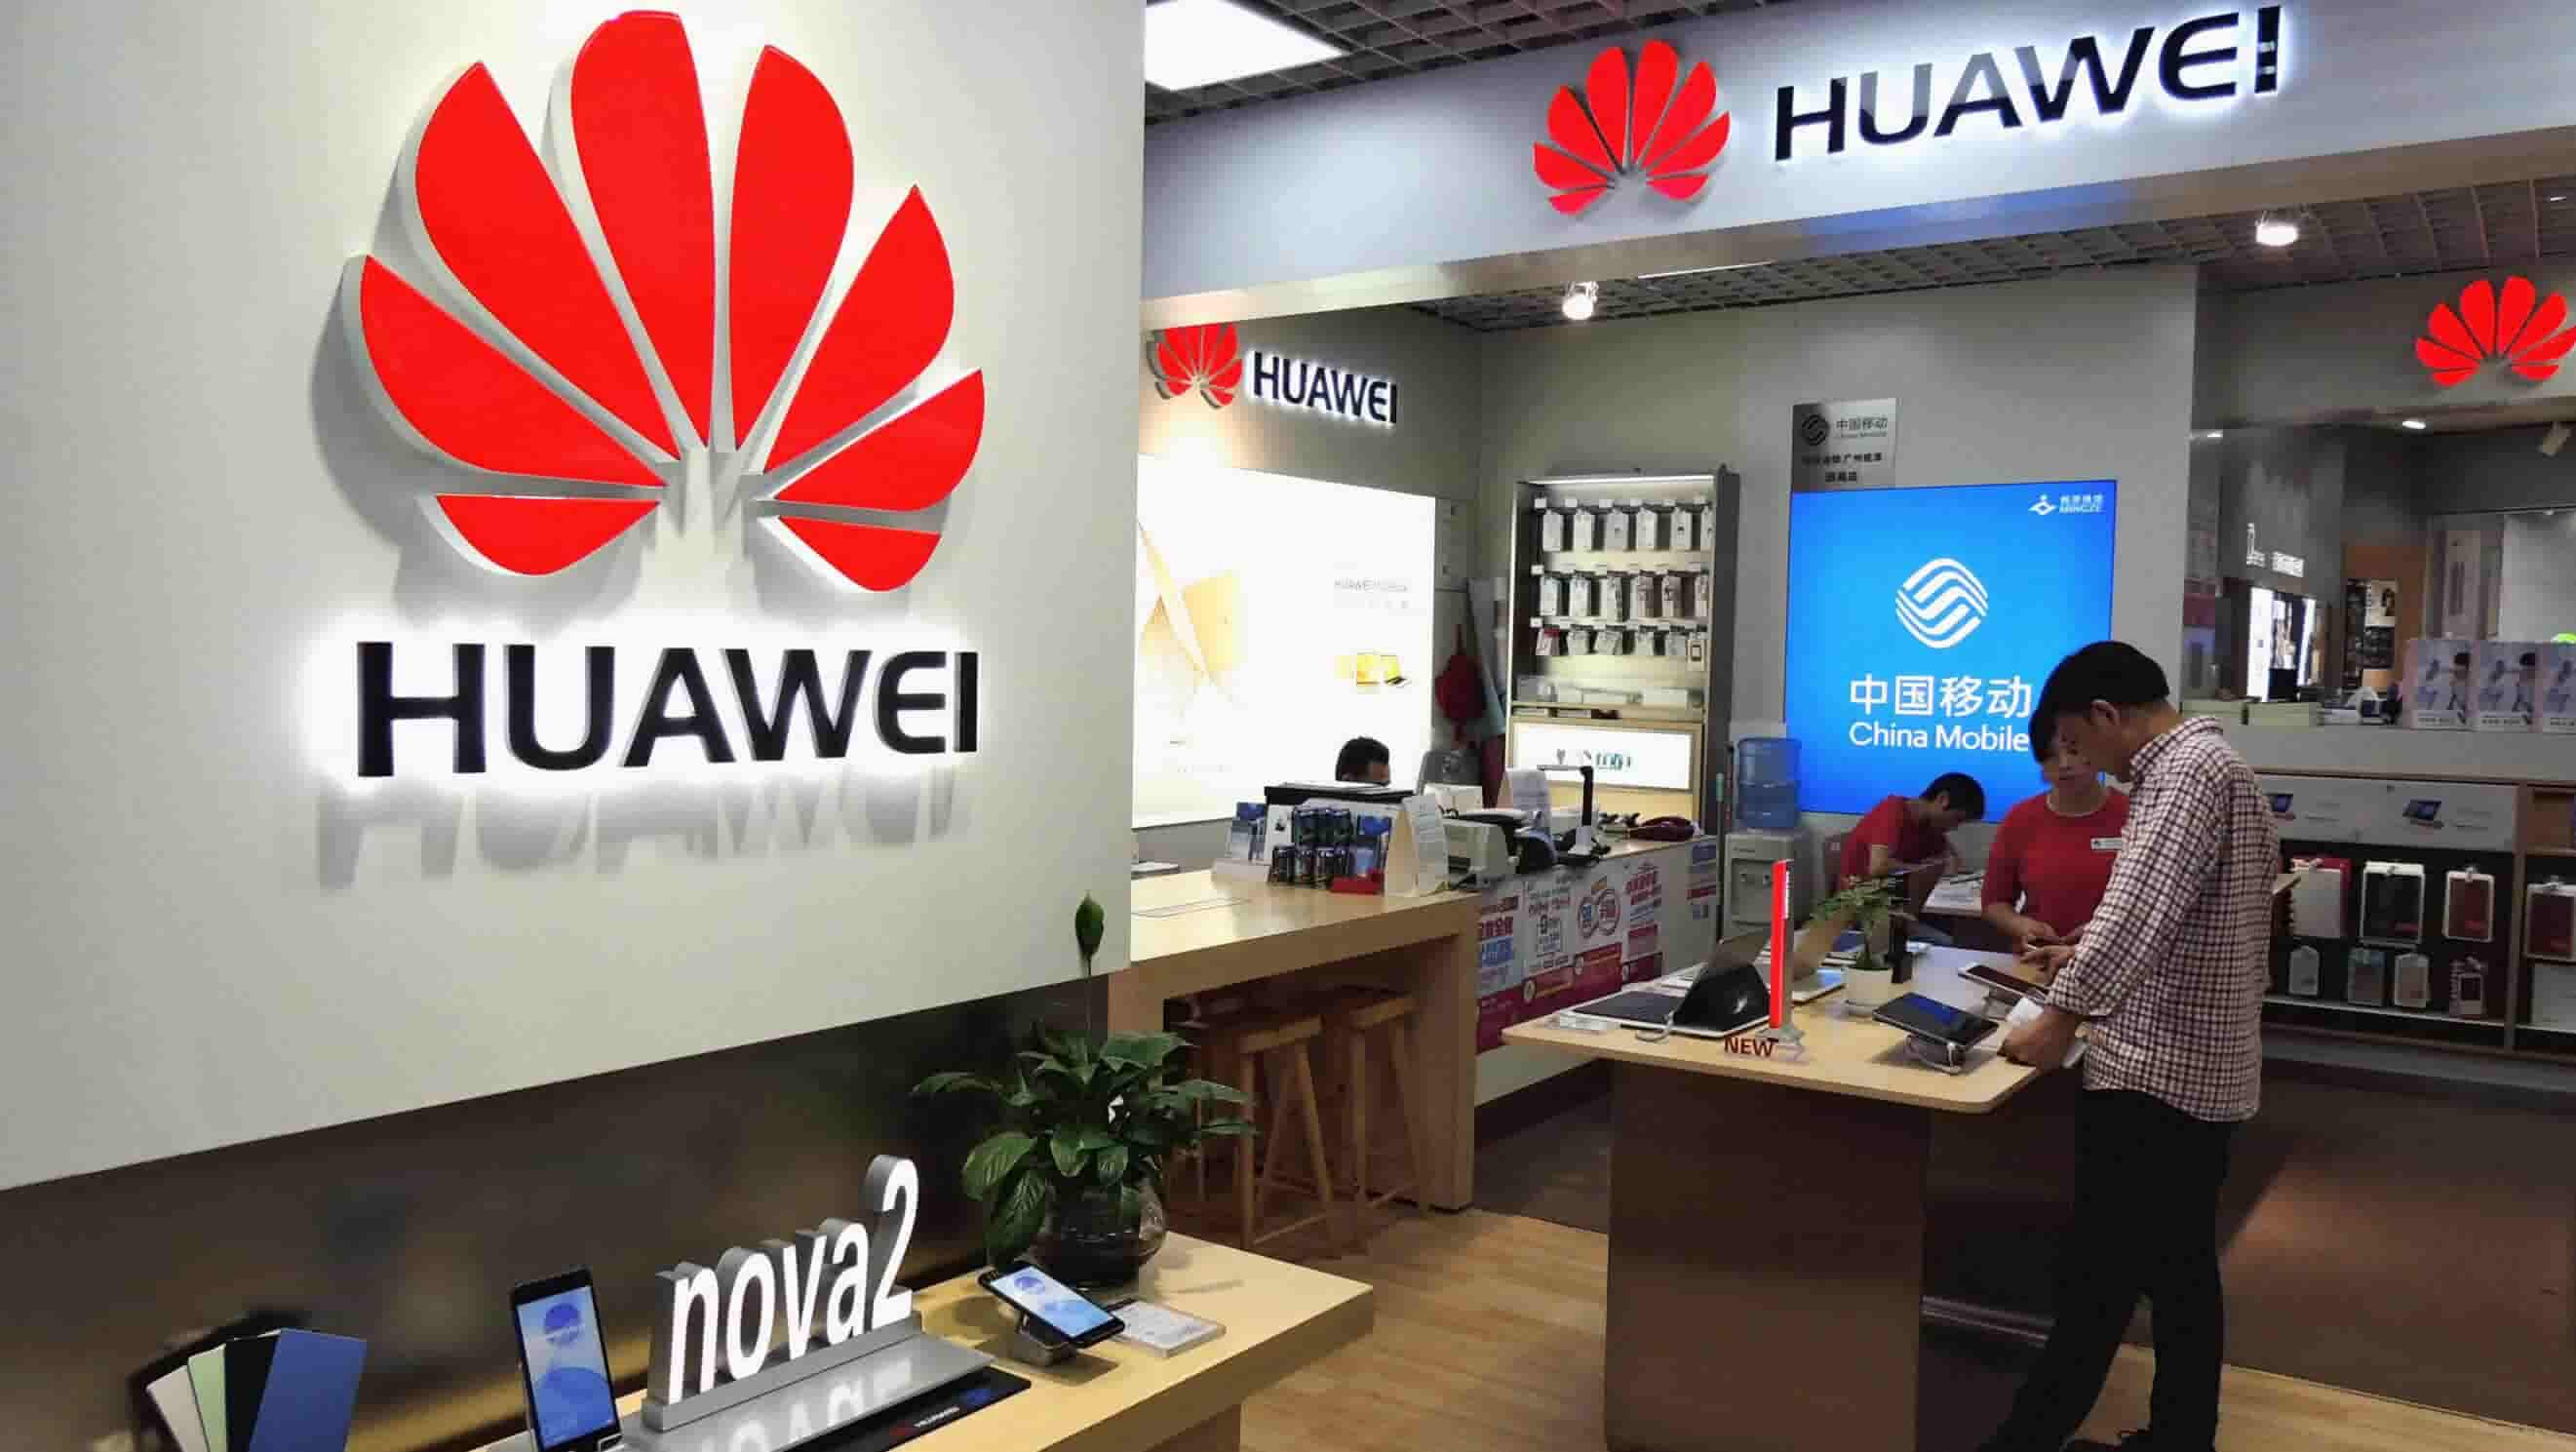 US ATTACKS CHINESE TECH FIRM HUAWEI